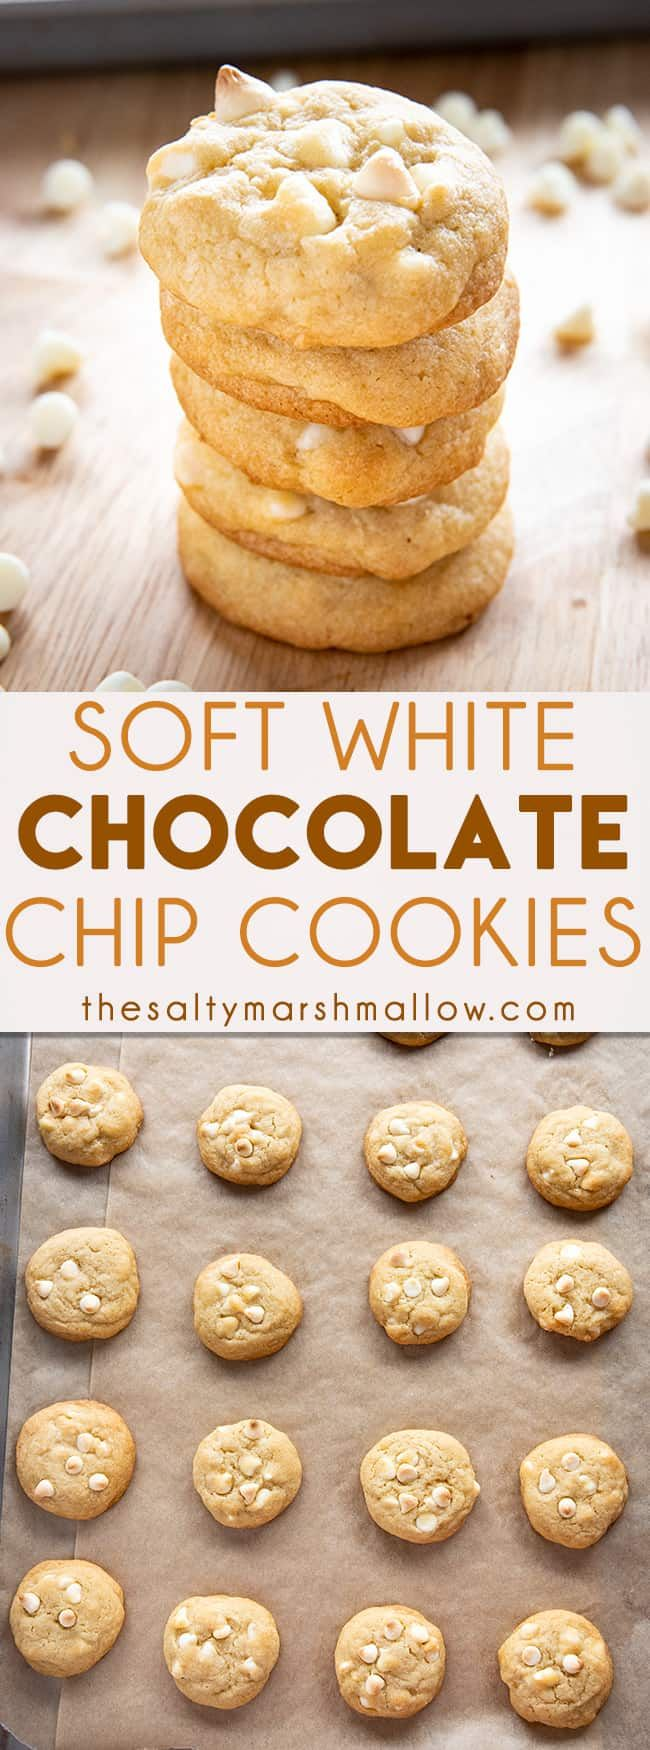 White Chocolate Chip Cookies White Chocolate Chip Cookies are soft, chewy, and packed full of white chocolate chips! These easy to make cookies are sure to become a family favorite!